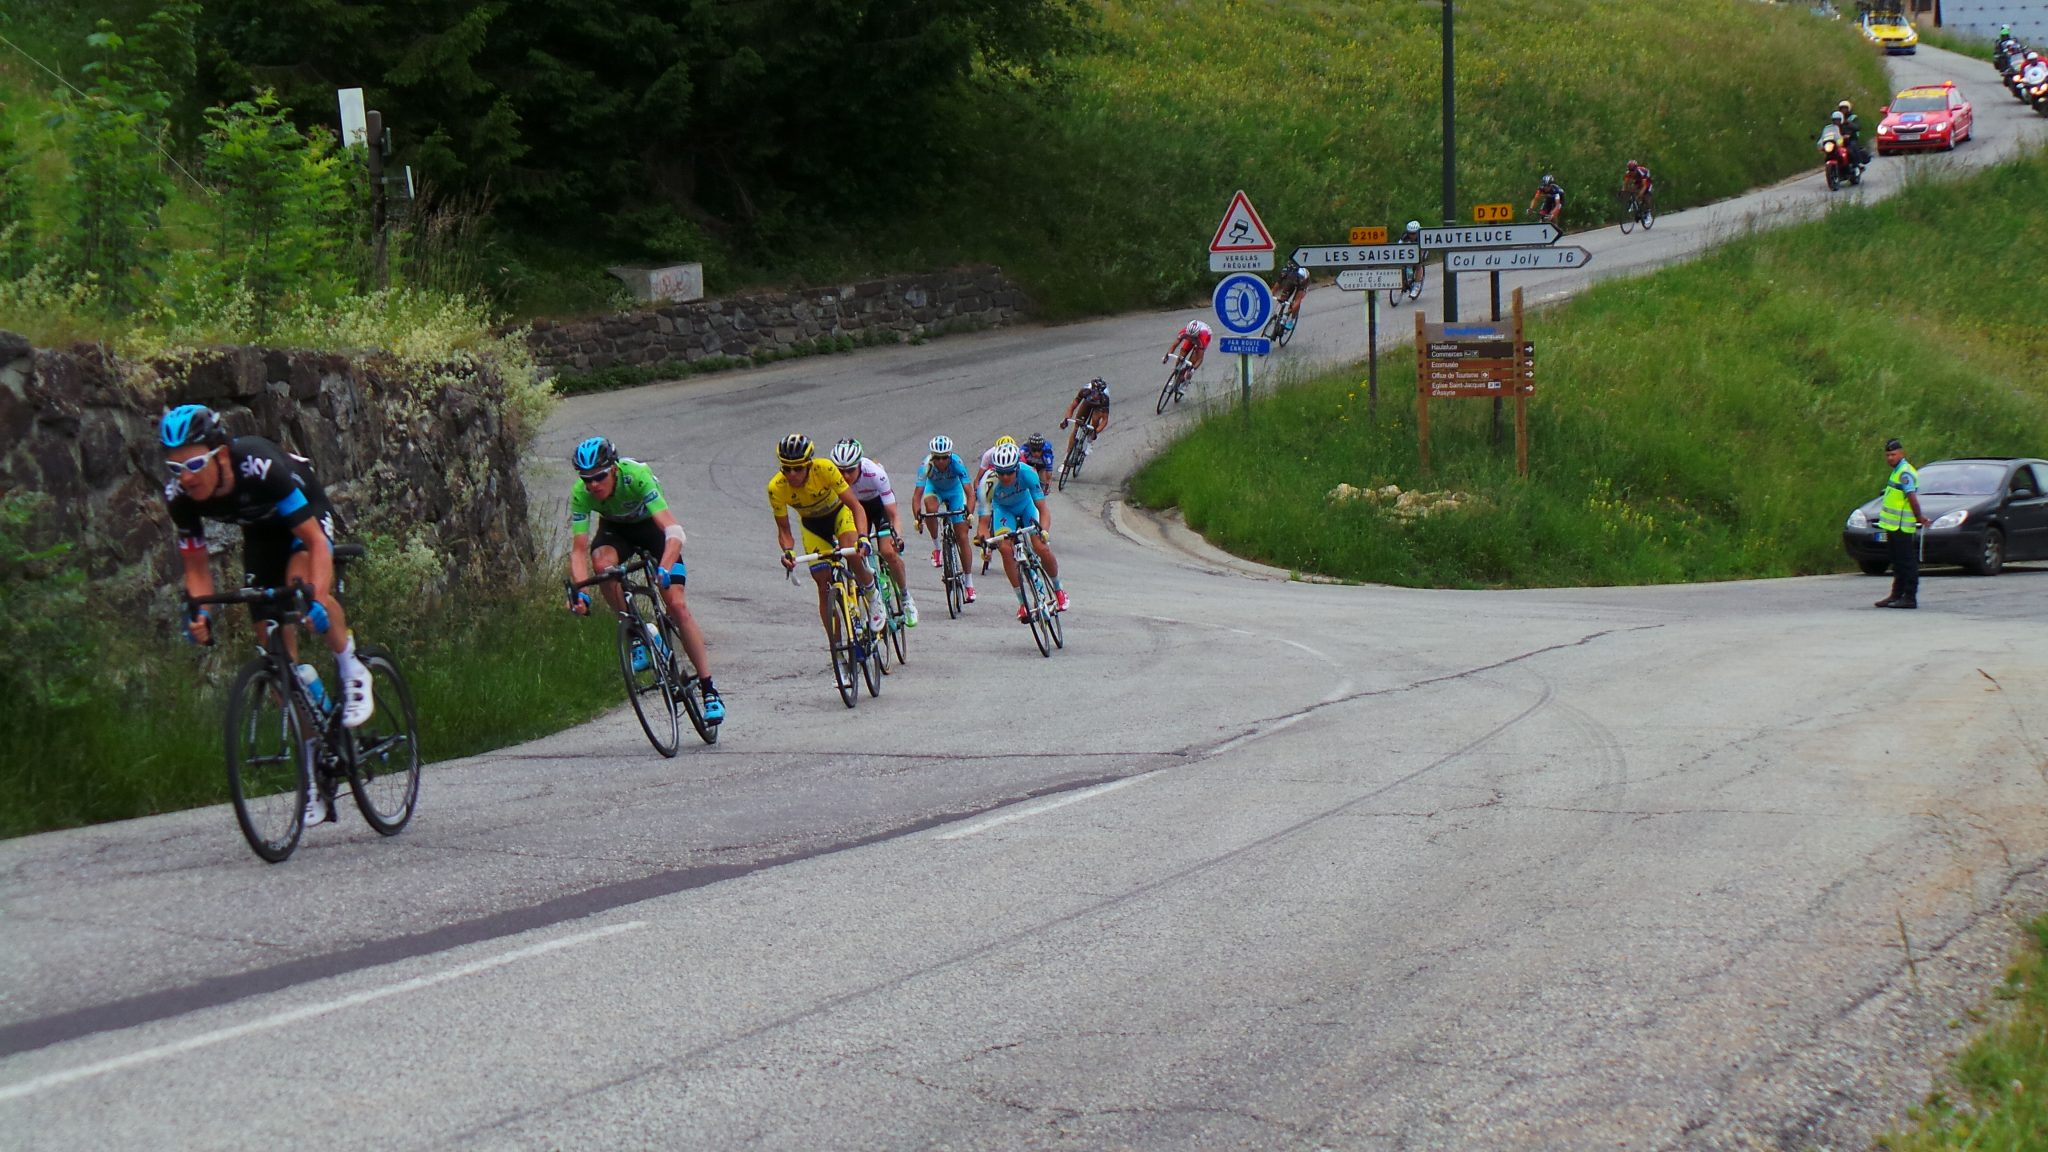 The Critérium du Dauphiné bunch zapping by